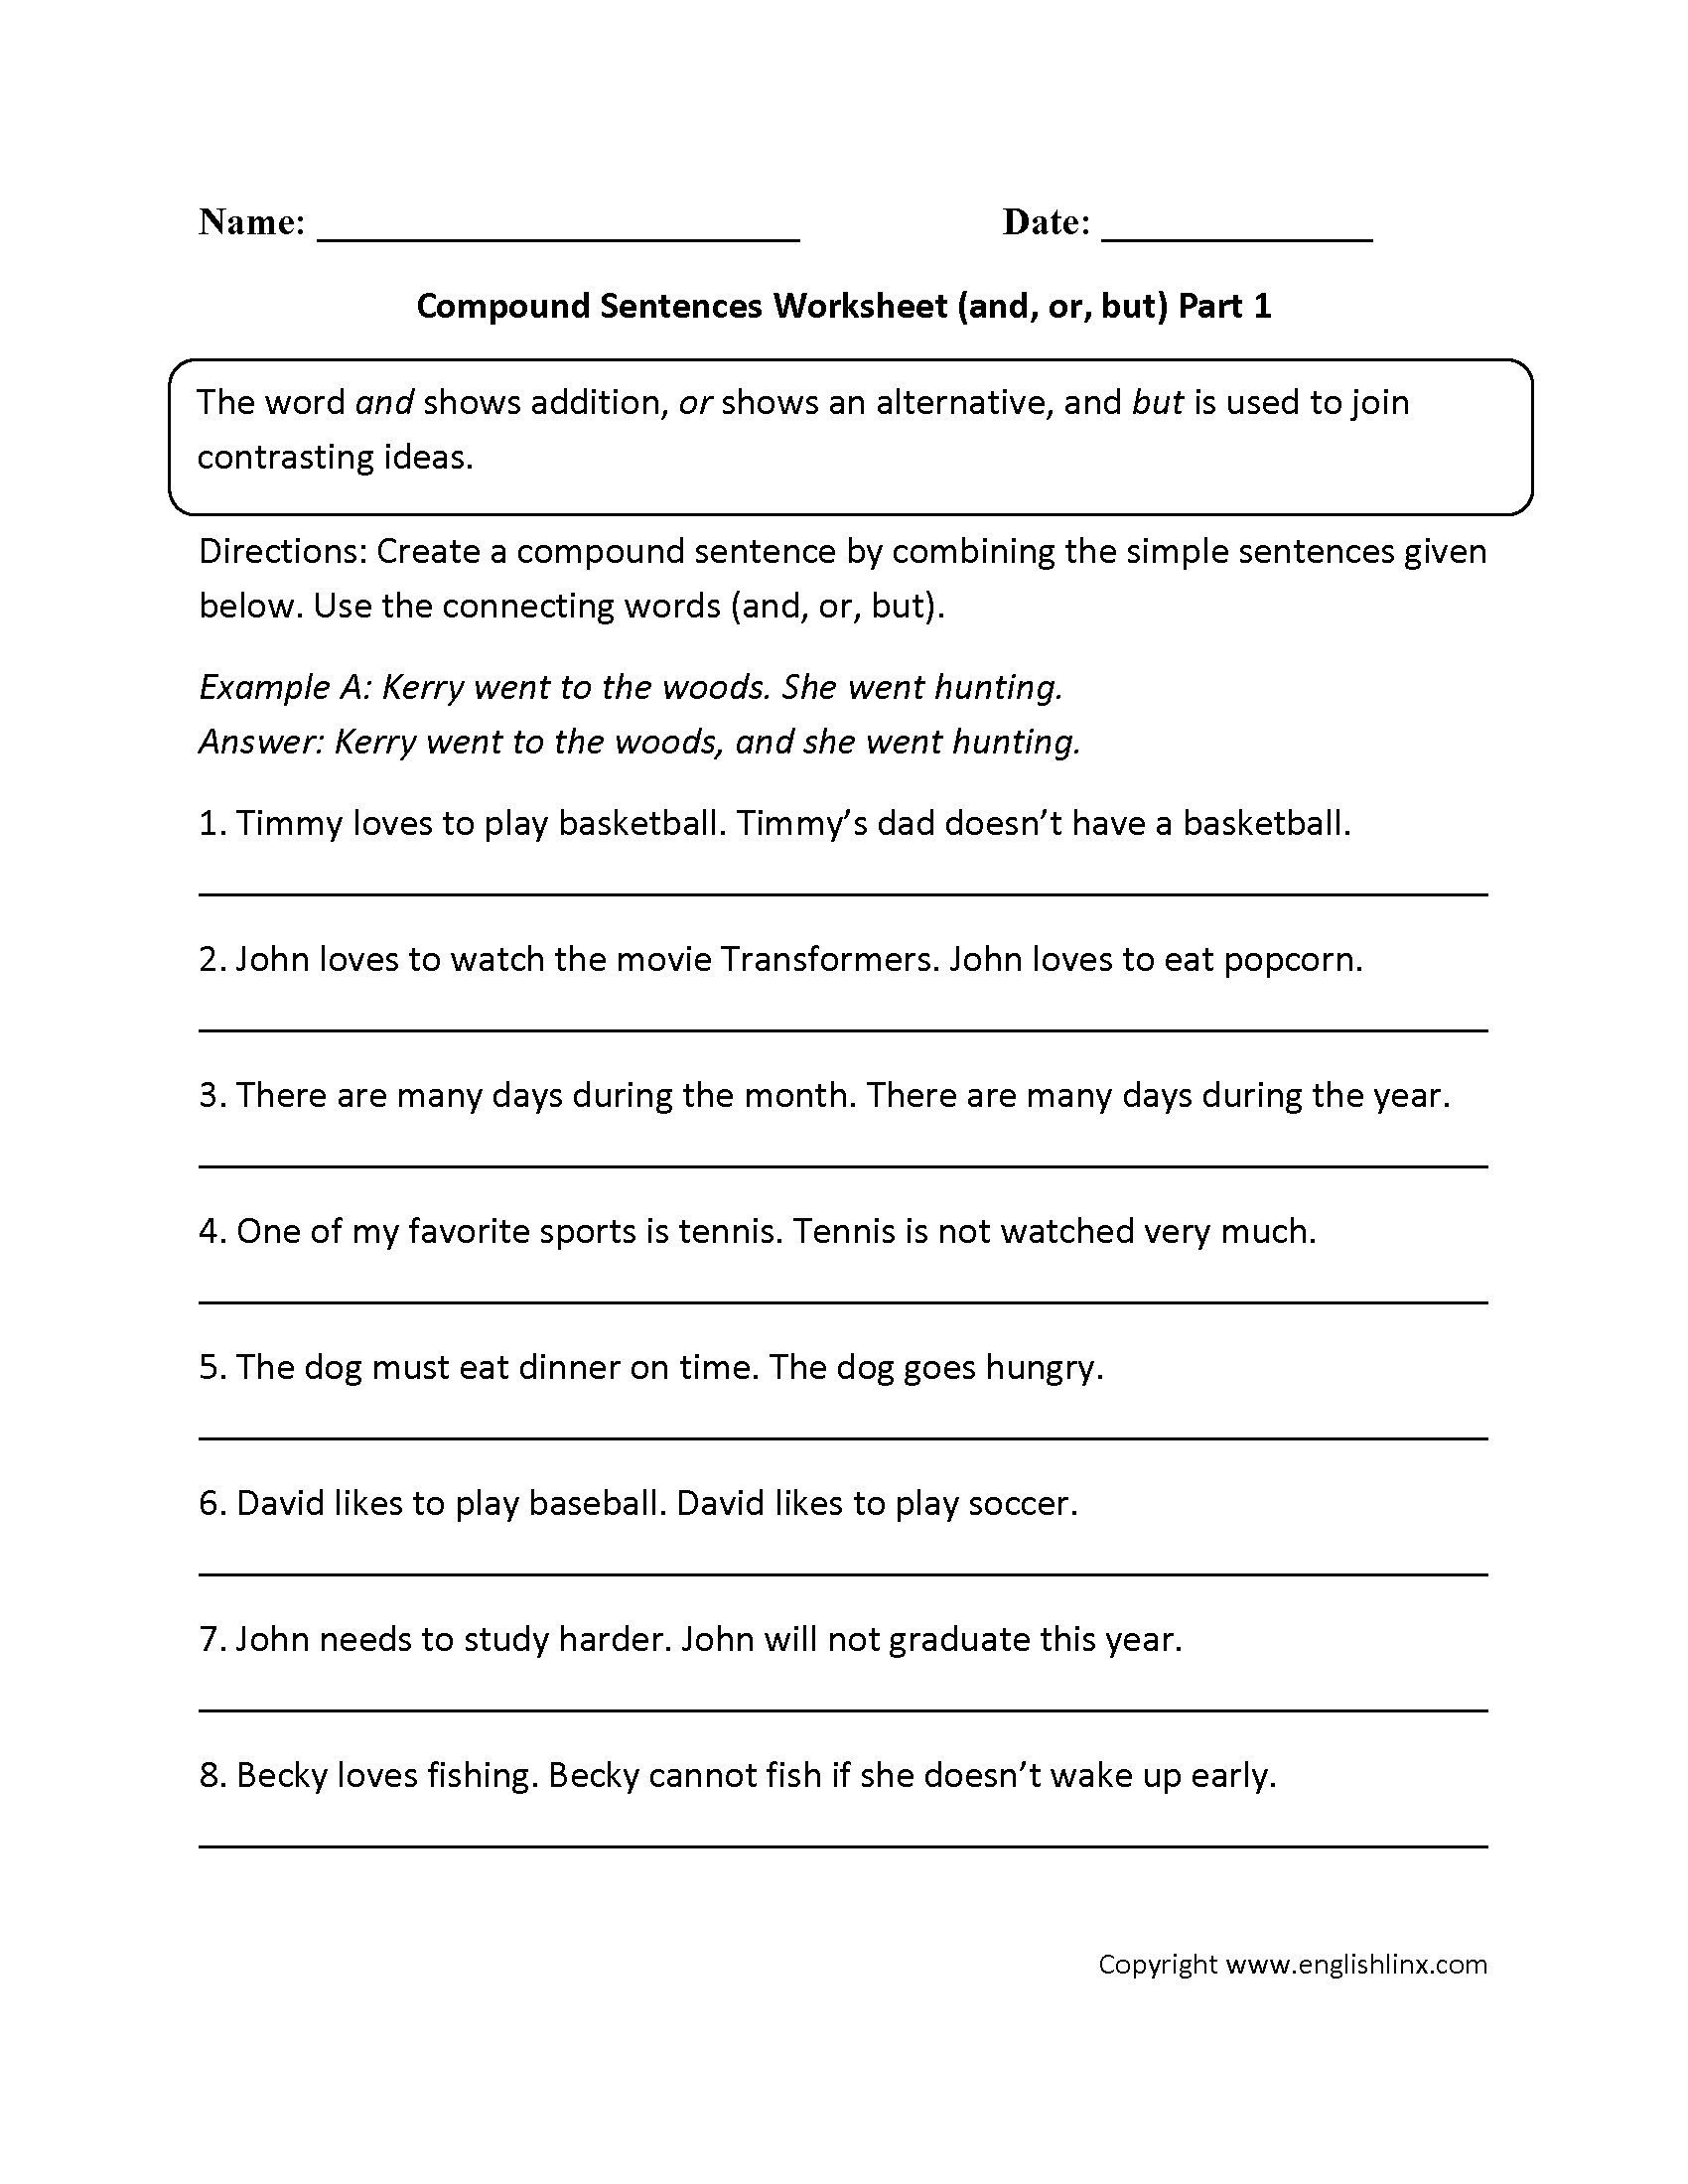 Complete Sentence Worksheets 3rd Grade Pound Sentences Worksheet 3rd Grade